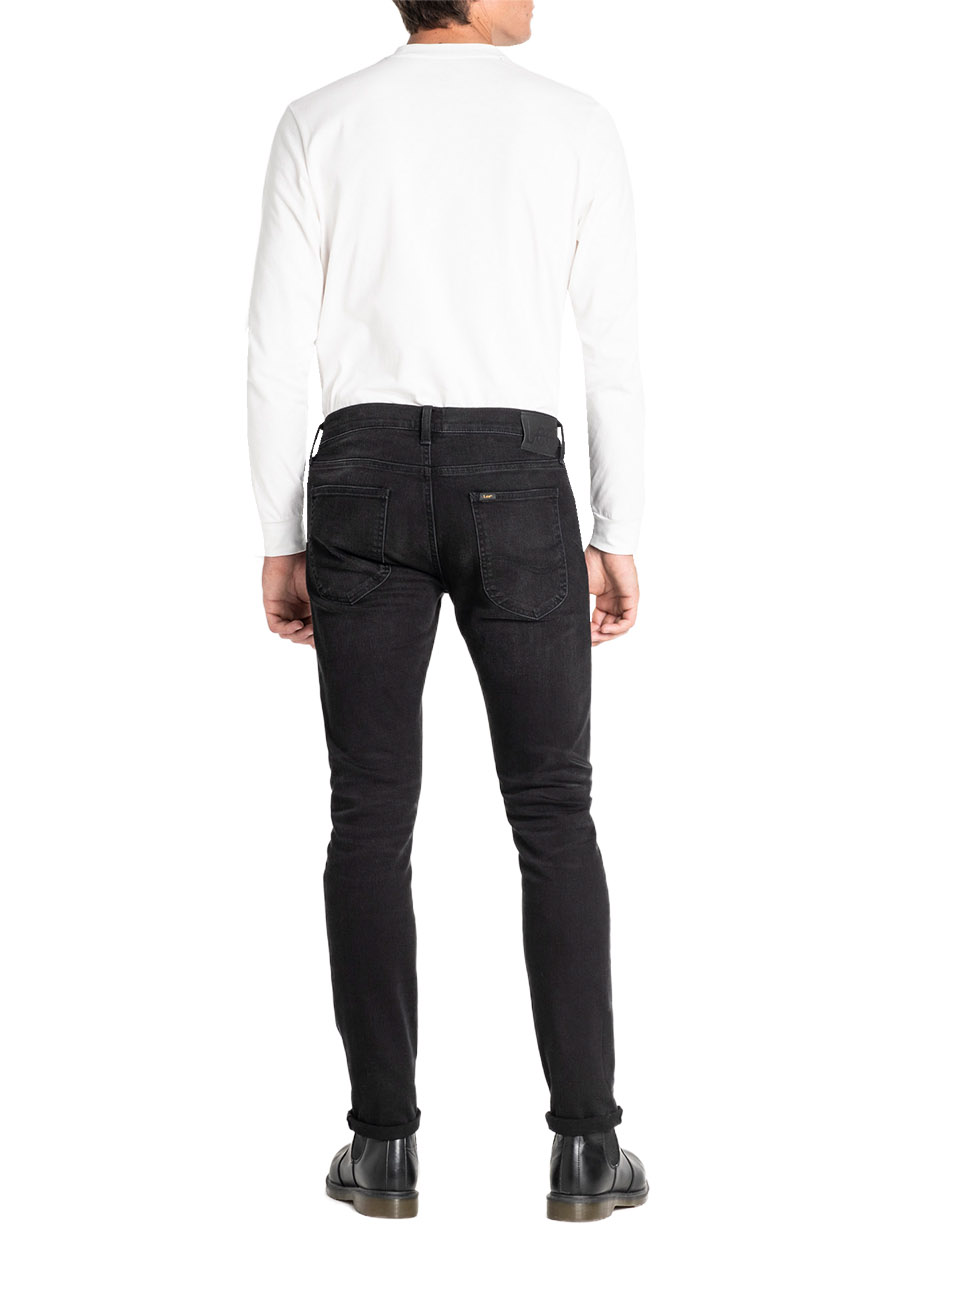 lee-herren-jeans-jeanshose-stretch-denim-luke-slim-tapered-fit-schwarz-moto-black